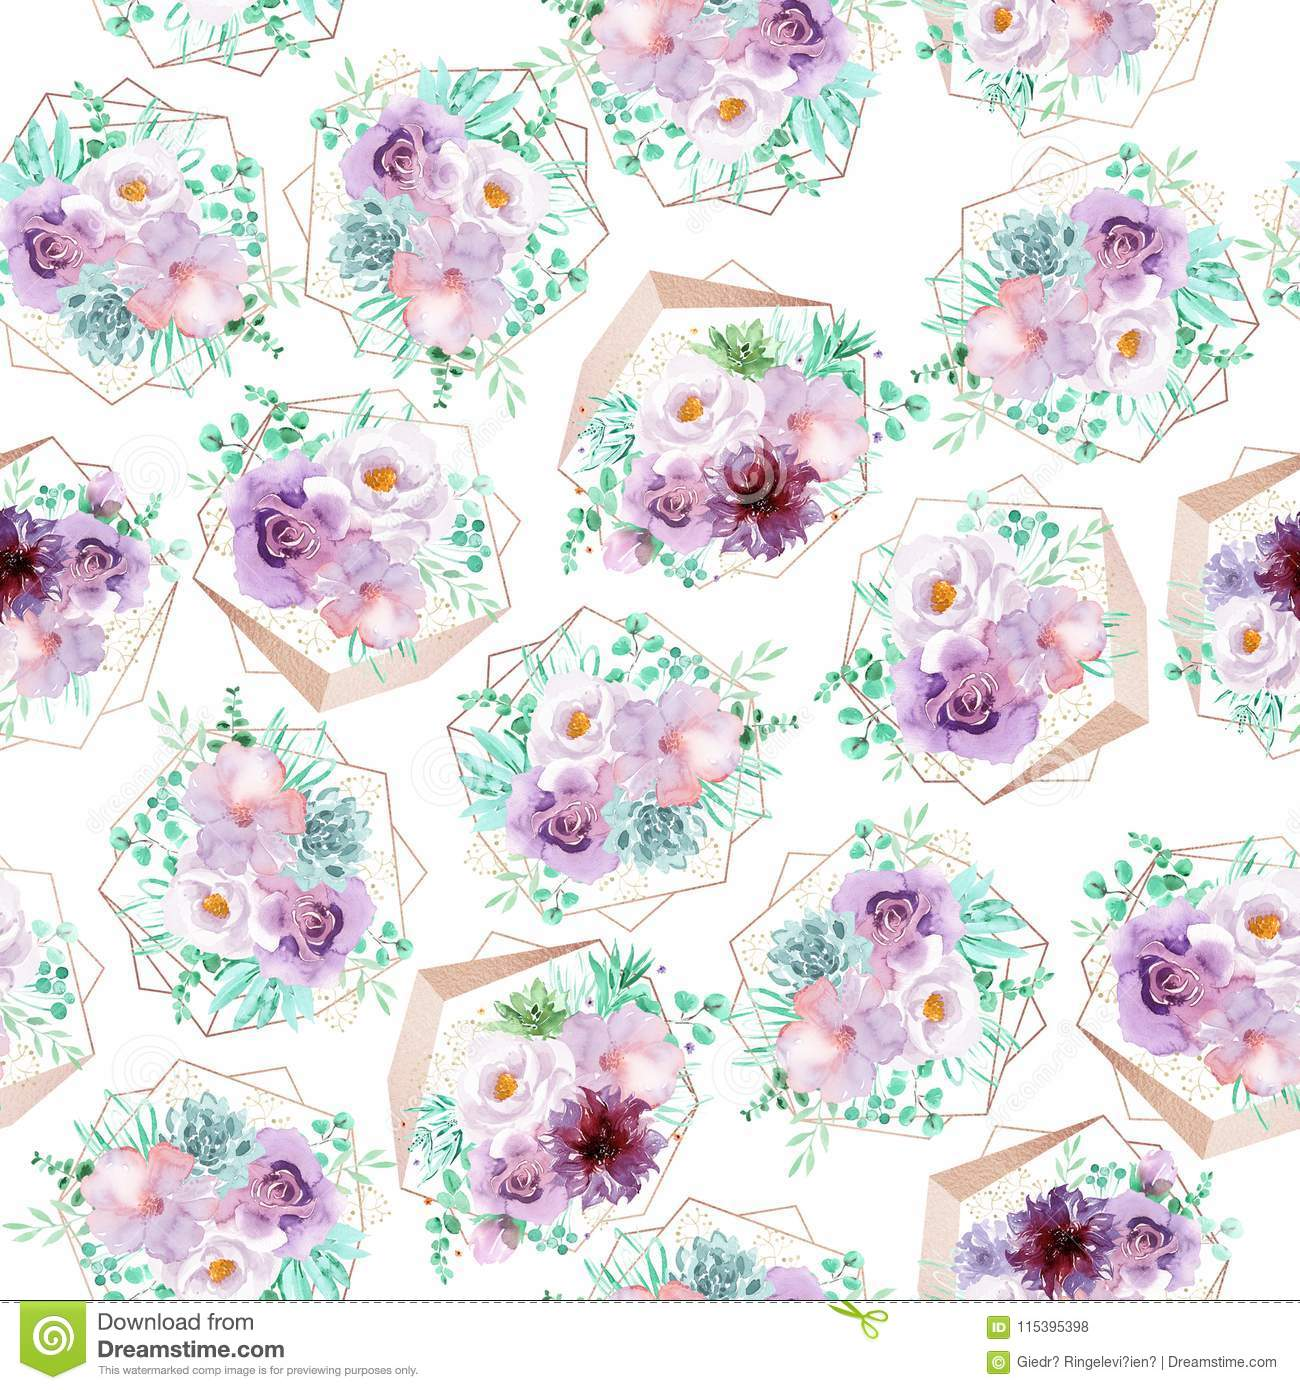 Watercolor Seamless Floral Background In Light Purple And Mint Green